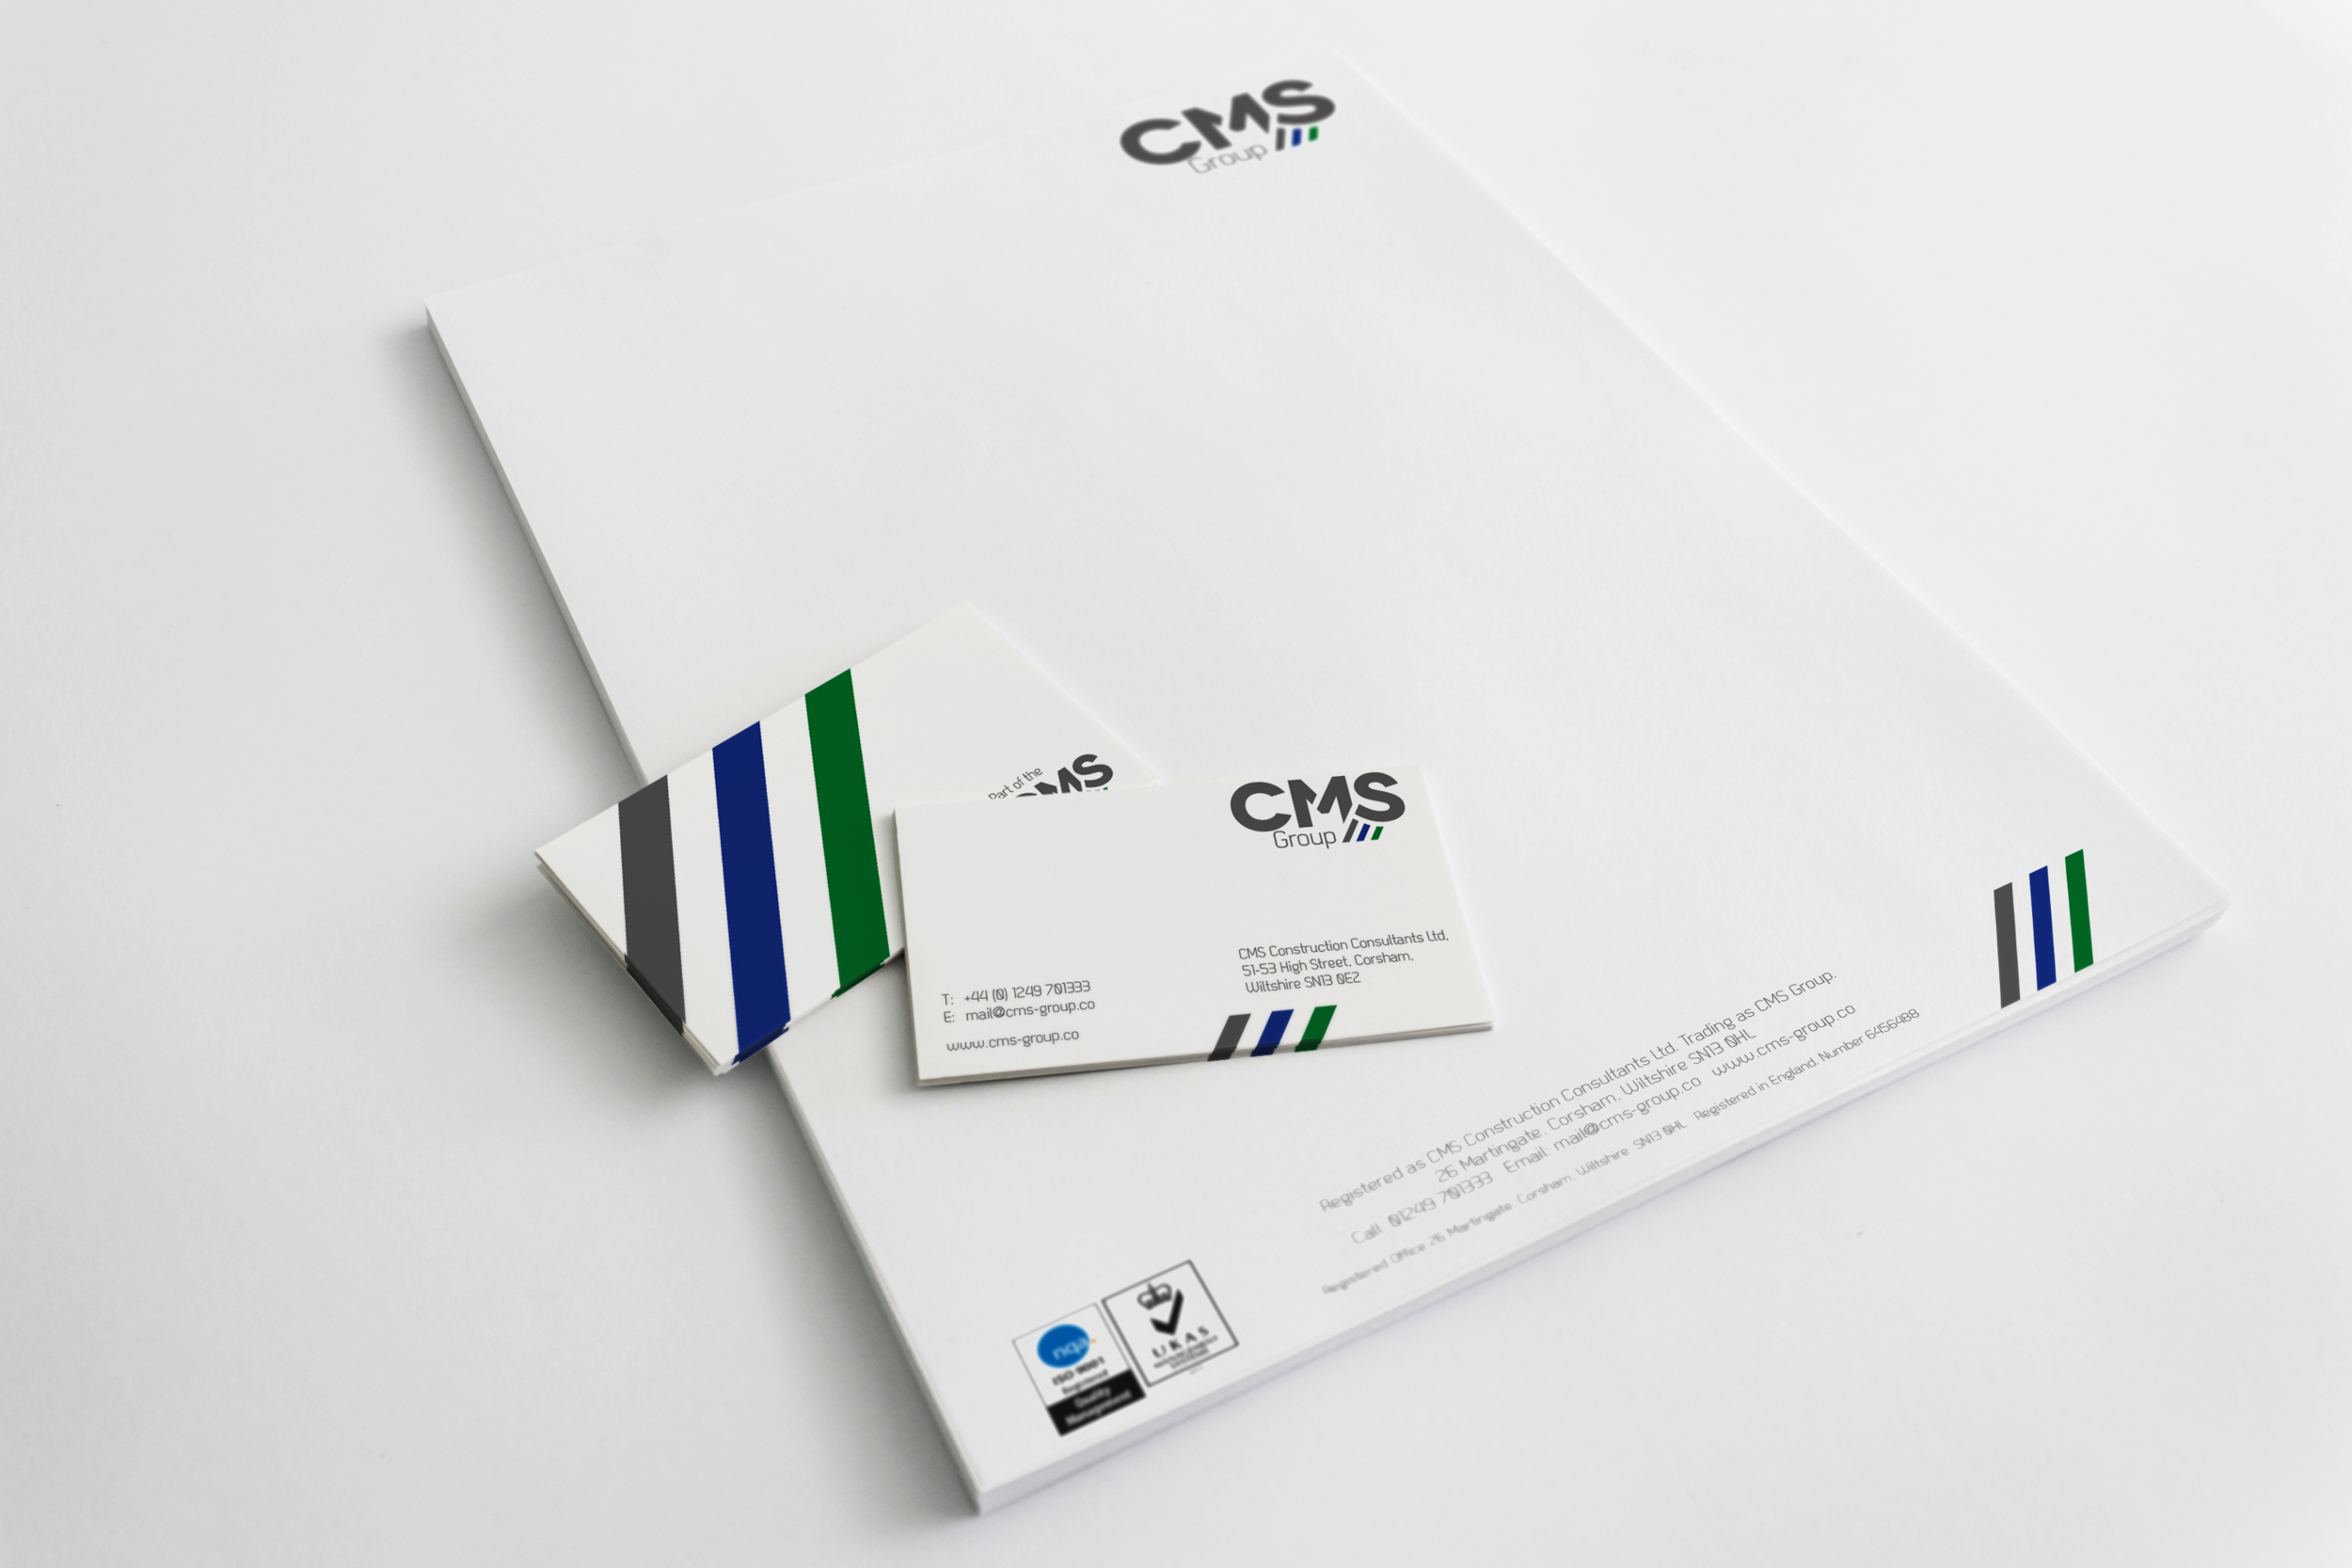 Stationery Design - One of your first touch points with new customers, so I'll make it look good for you.